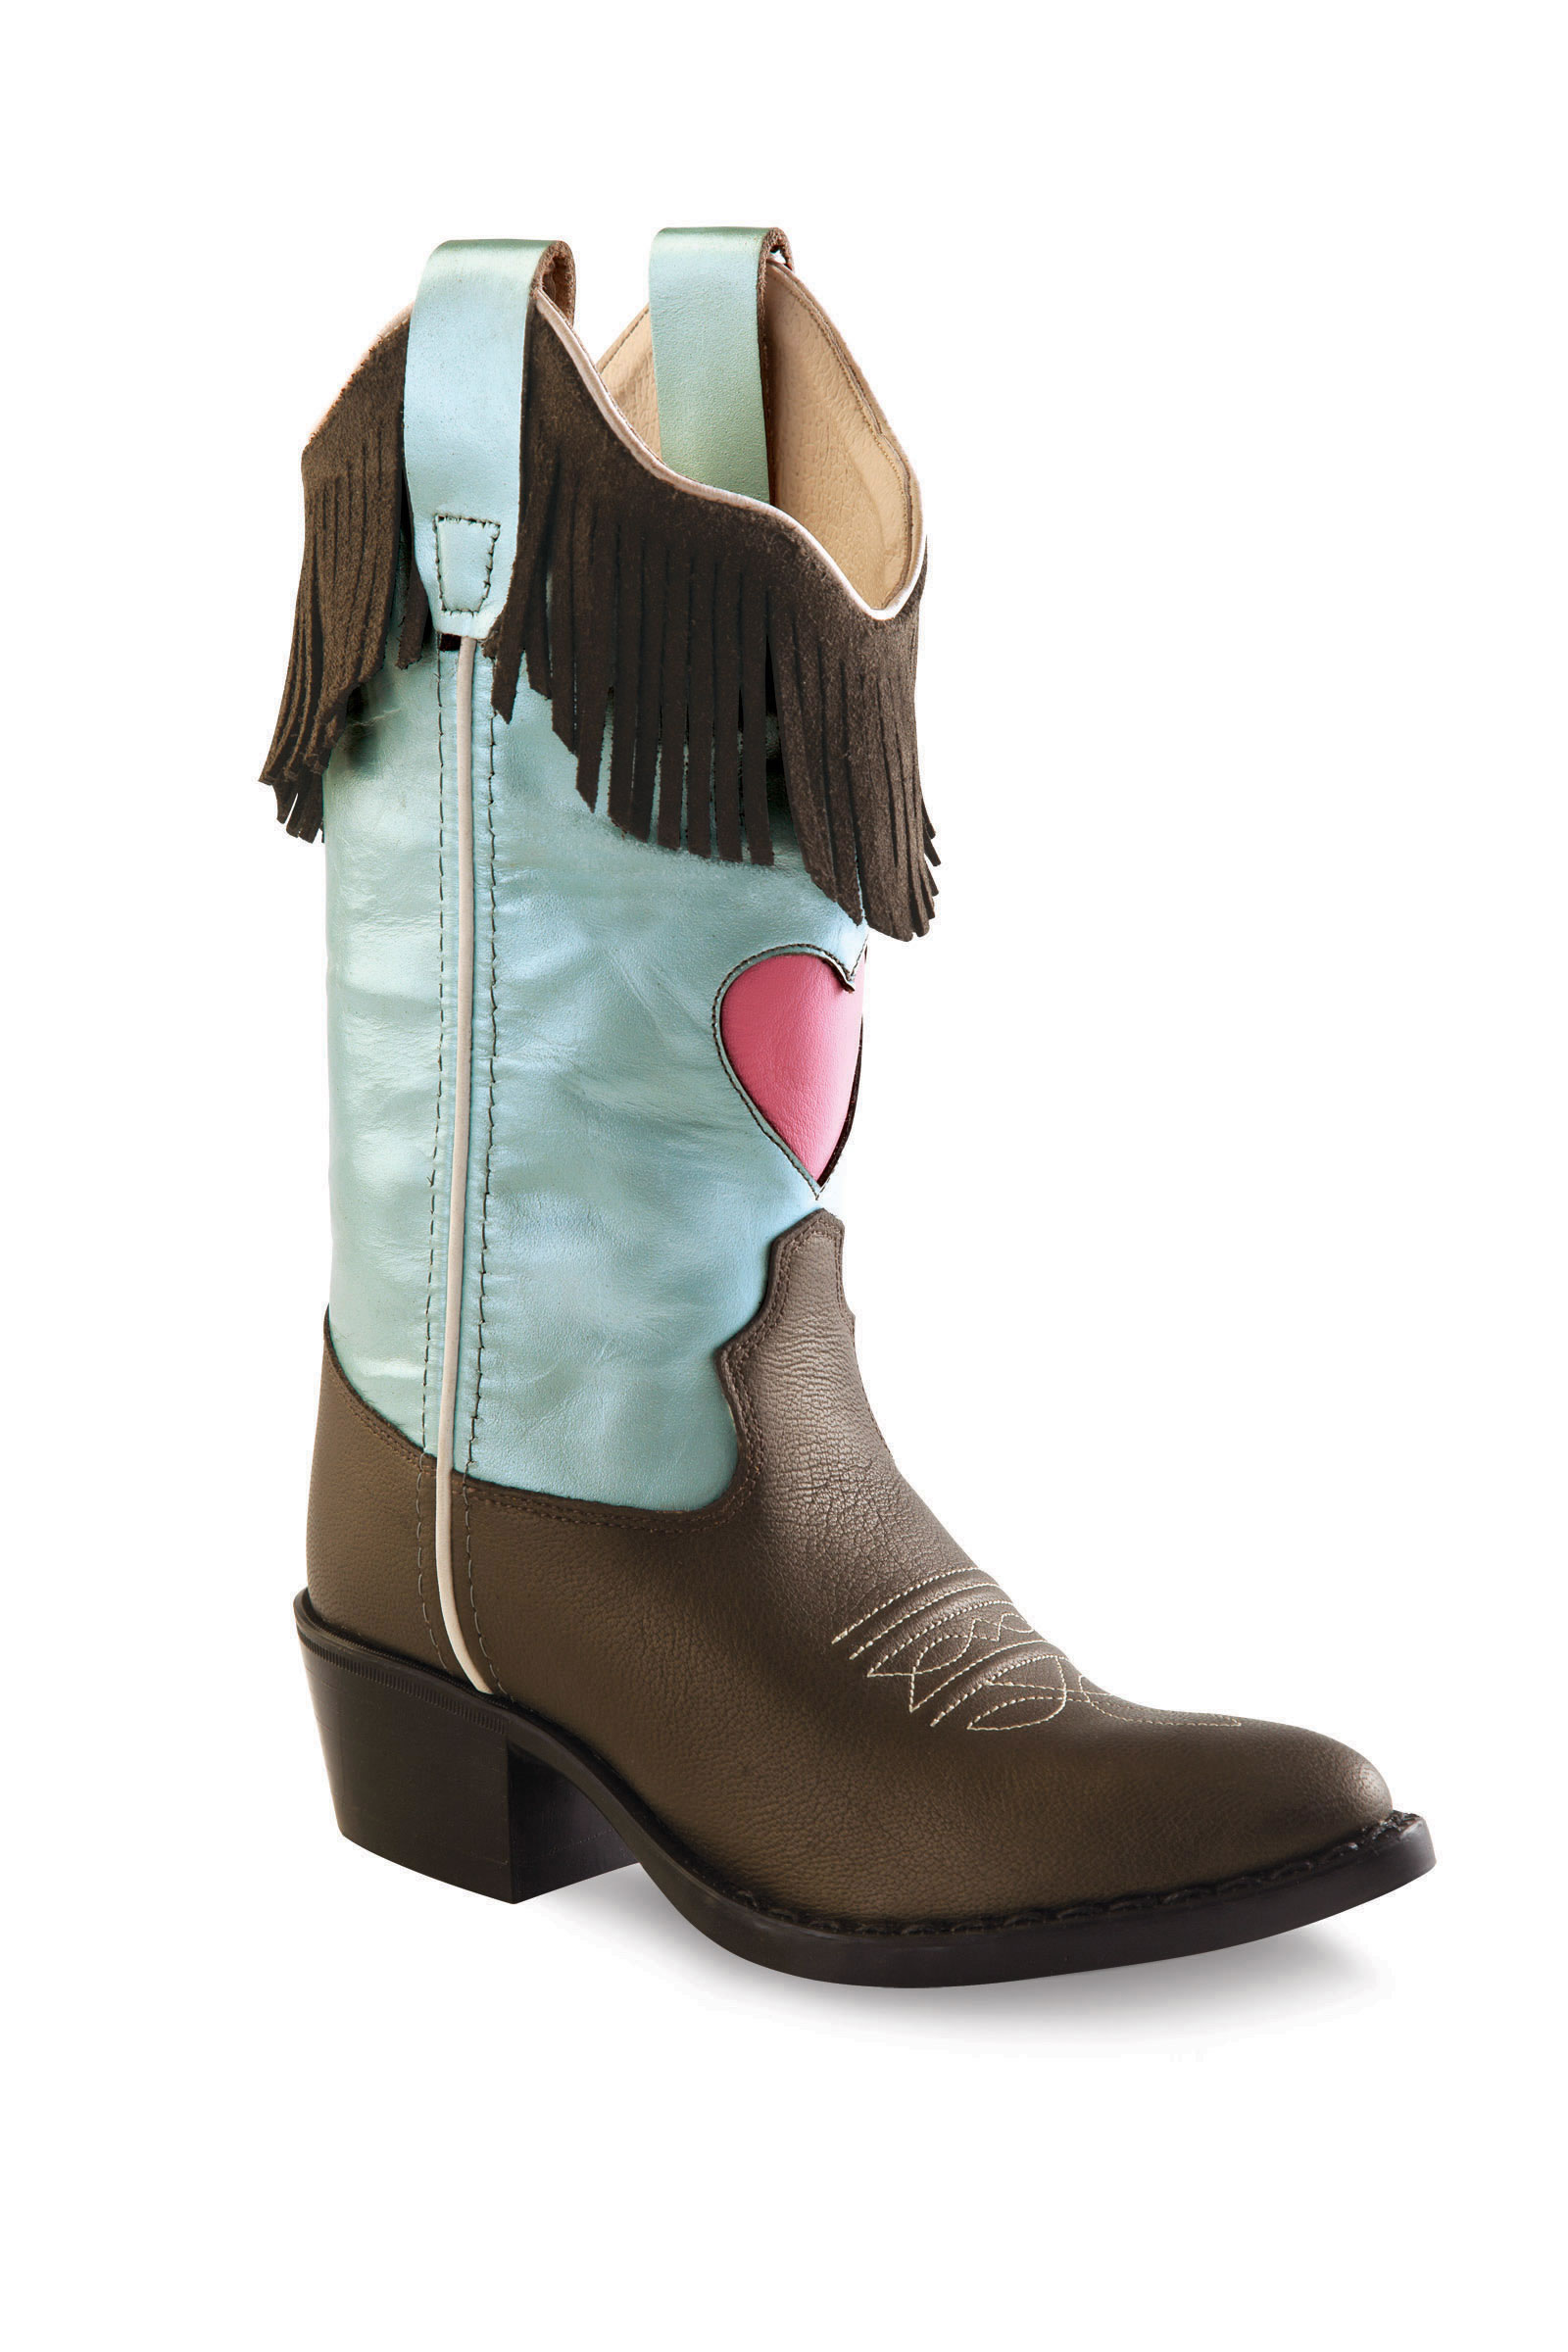 a5b9844e556 Old West Children's J Toe Western Boots - Brown/Silver Blue